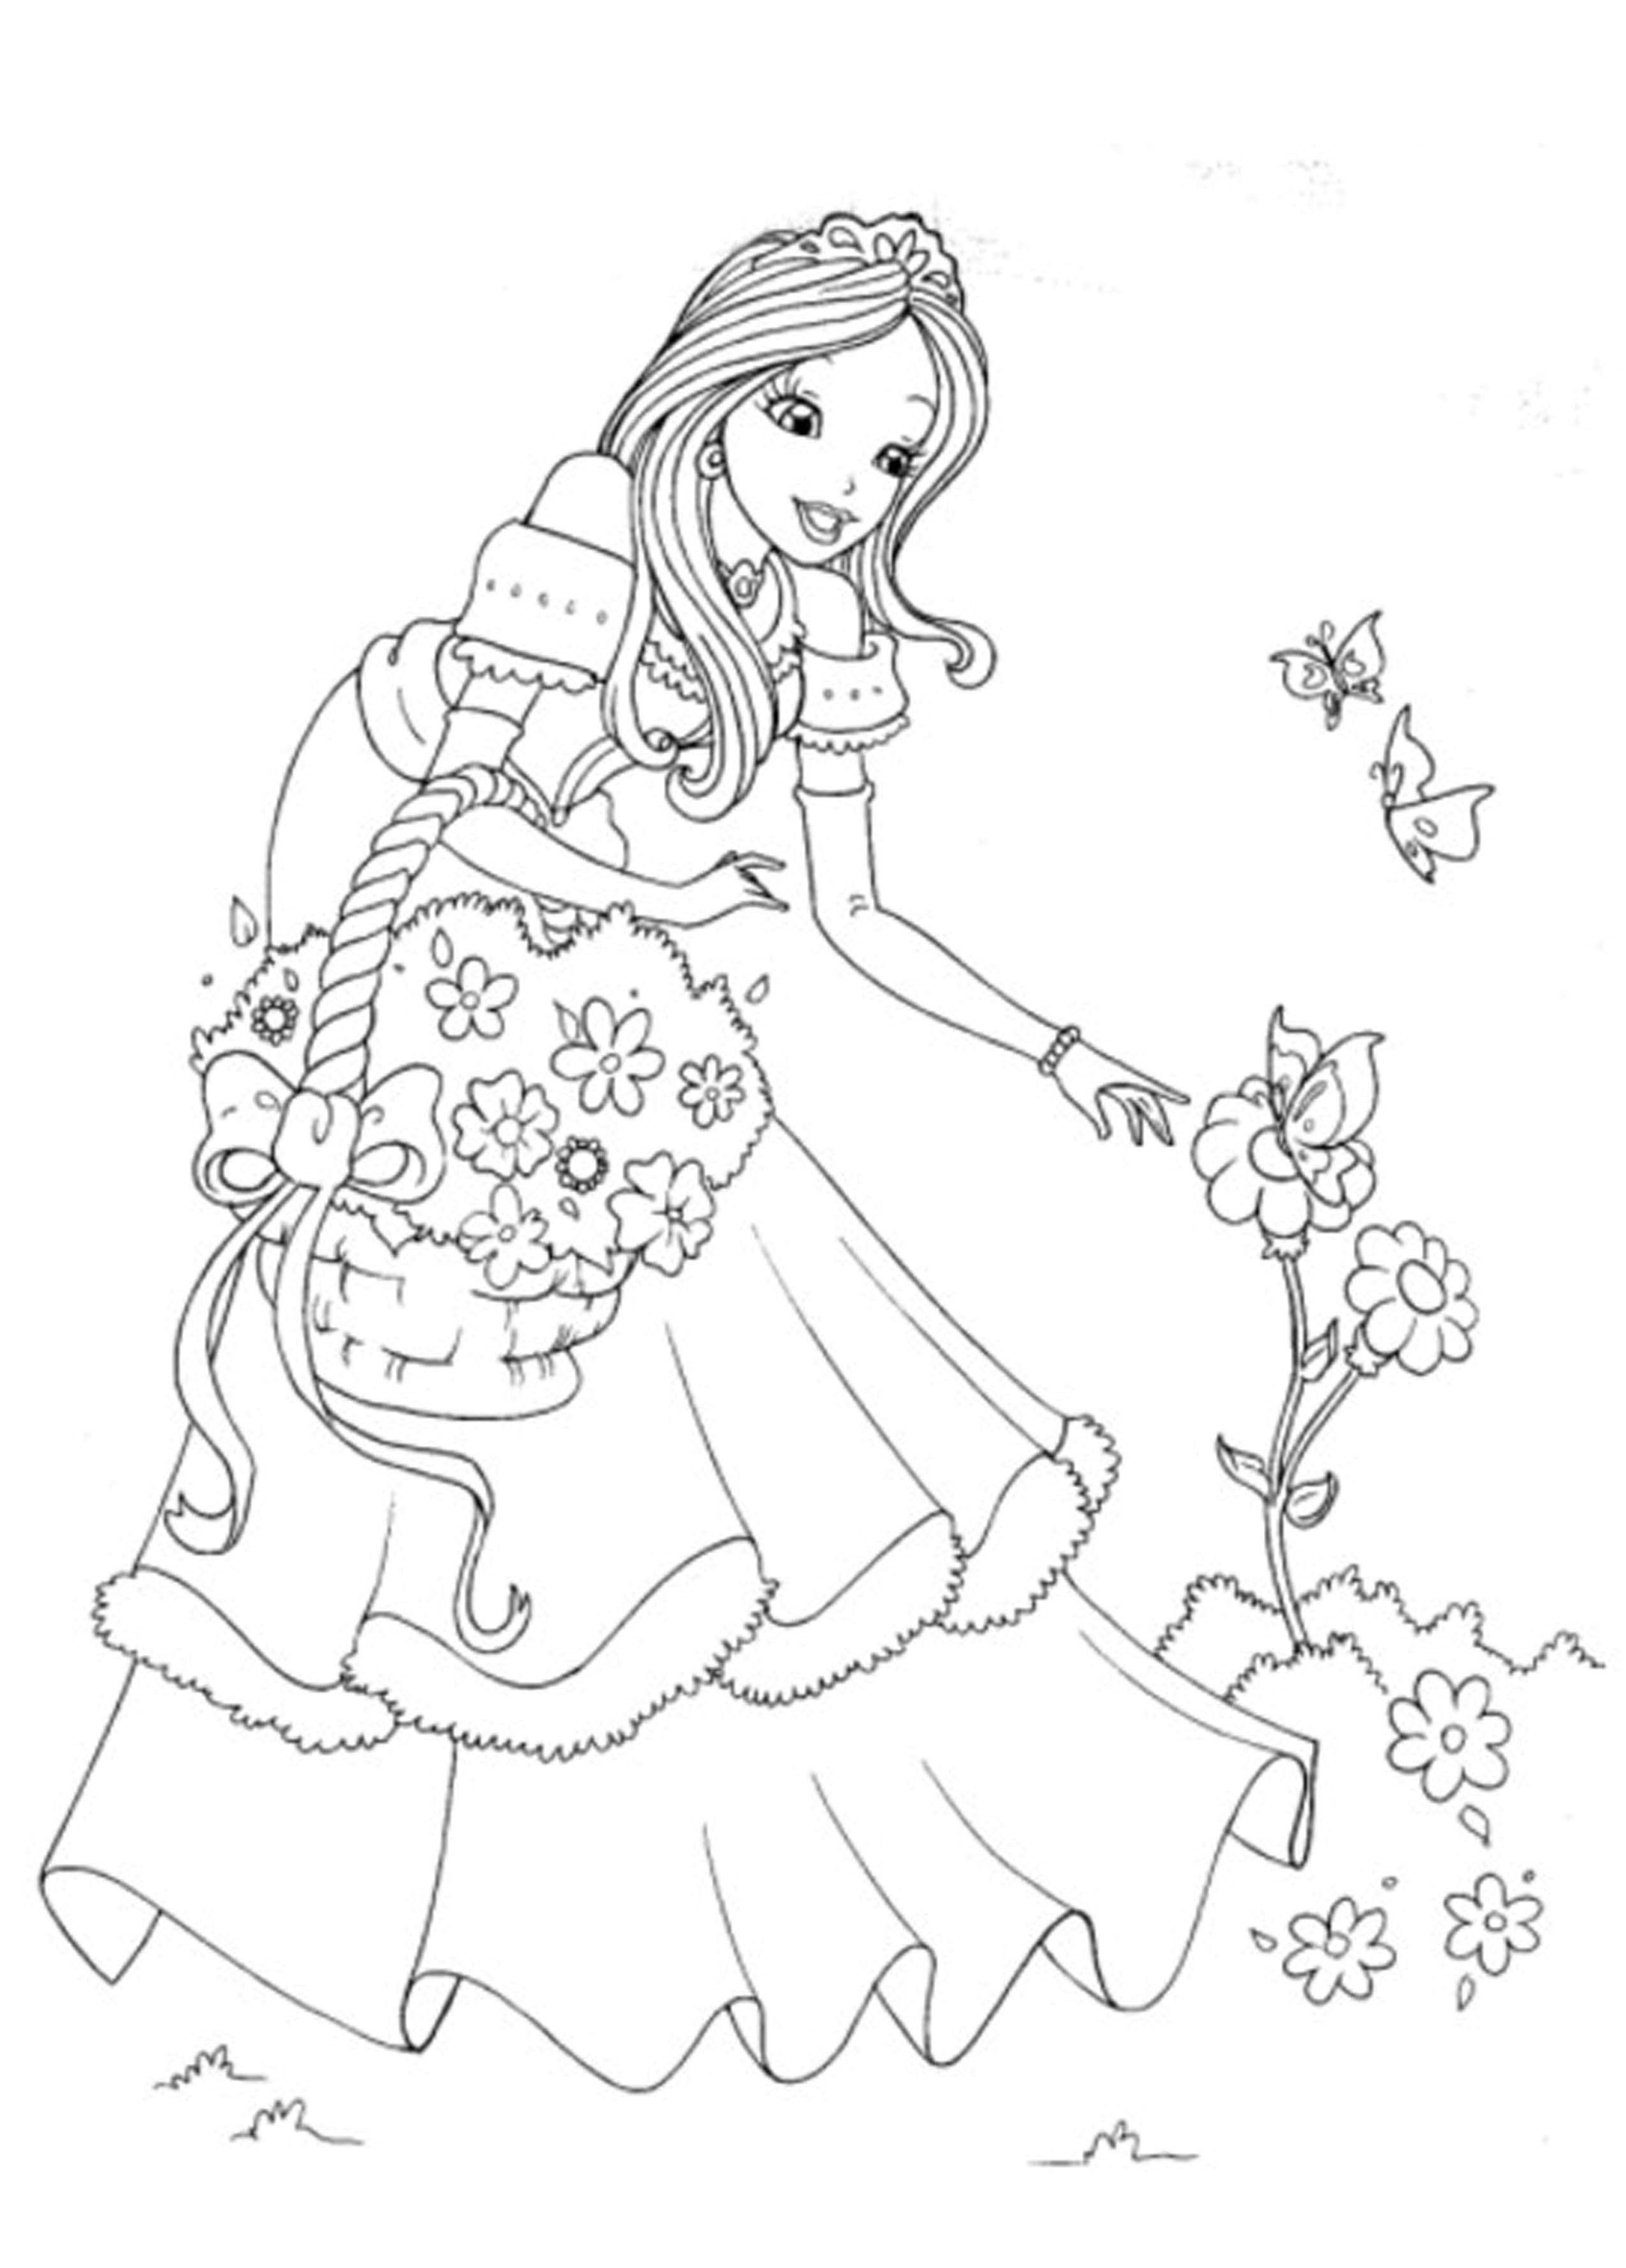 Non Disney Princess Coloring Page Through The Thousands Of Images Online About Non D Disney Princess Coloring Pages Princess Coloring Princess Coloring Pages